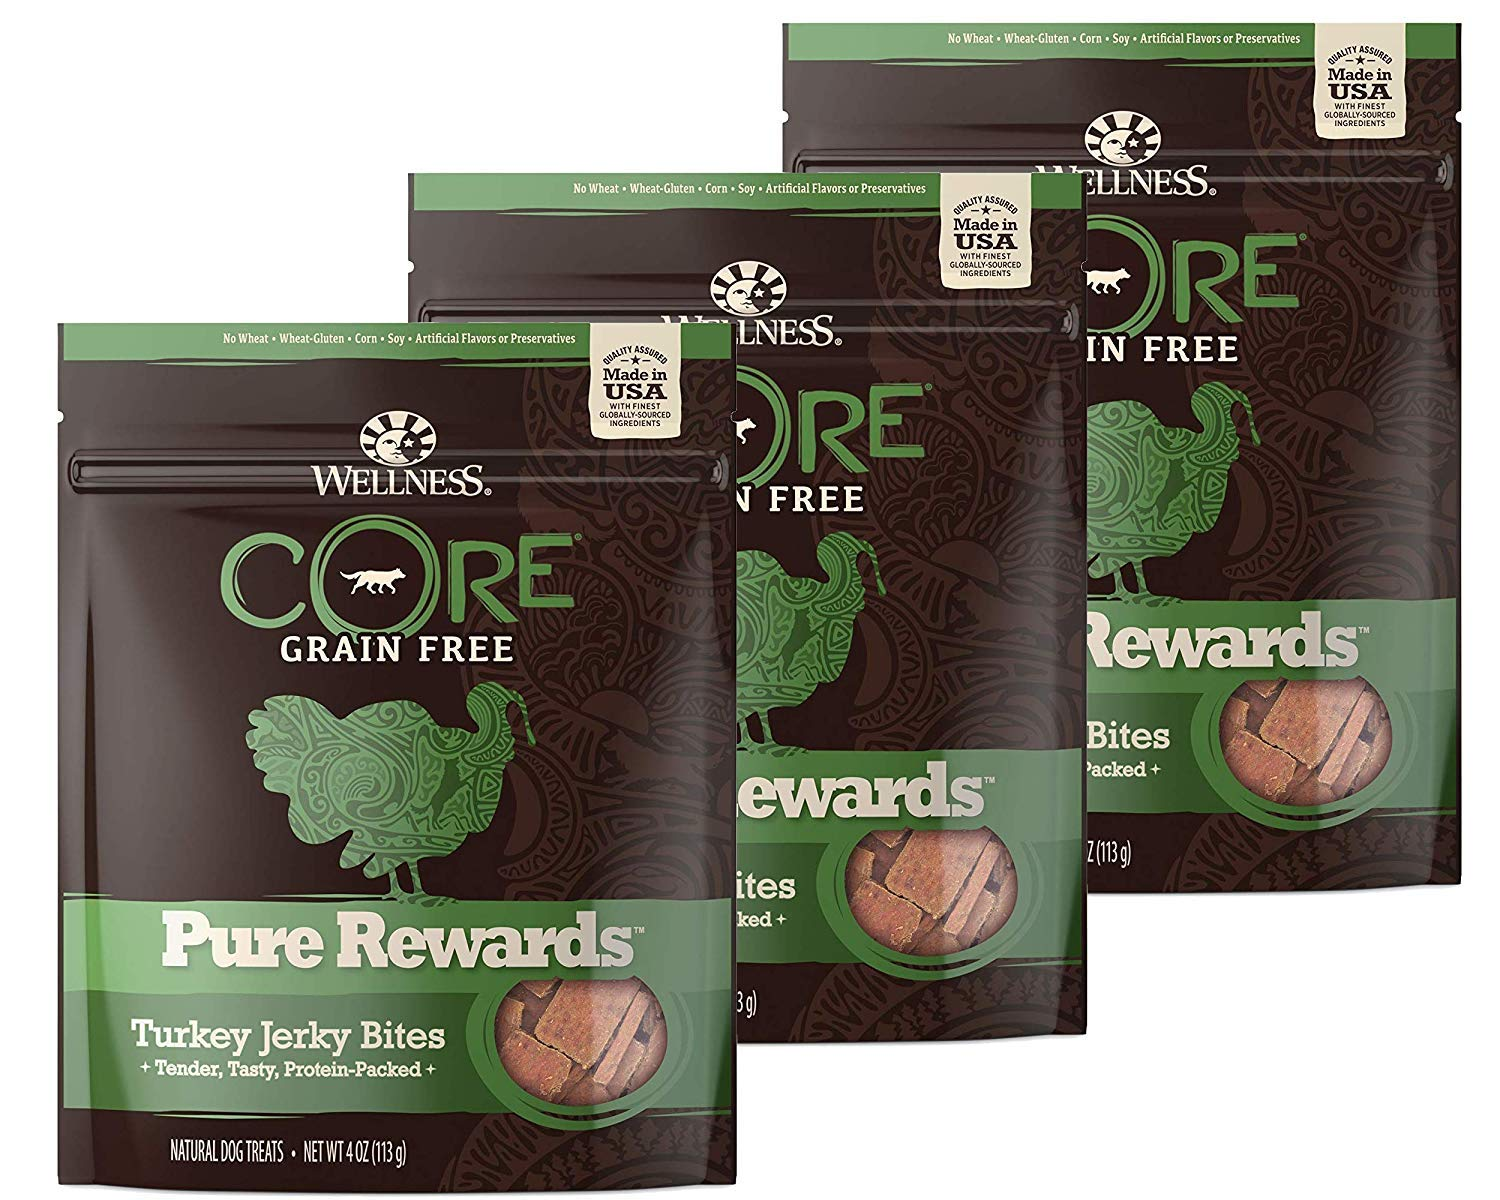 WELLNESS CORE Pure Rewards Natural Grain Free Dog Treats, Soft Jerky Bites, 4-Ounce Bag Turkey Jerky, 3 Pack 4-Ounce Bag